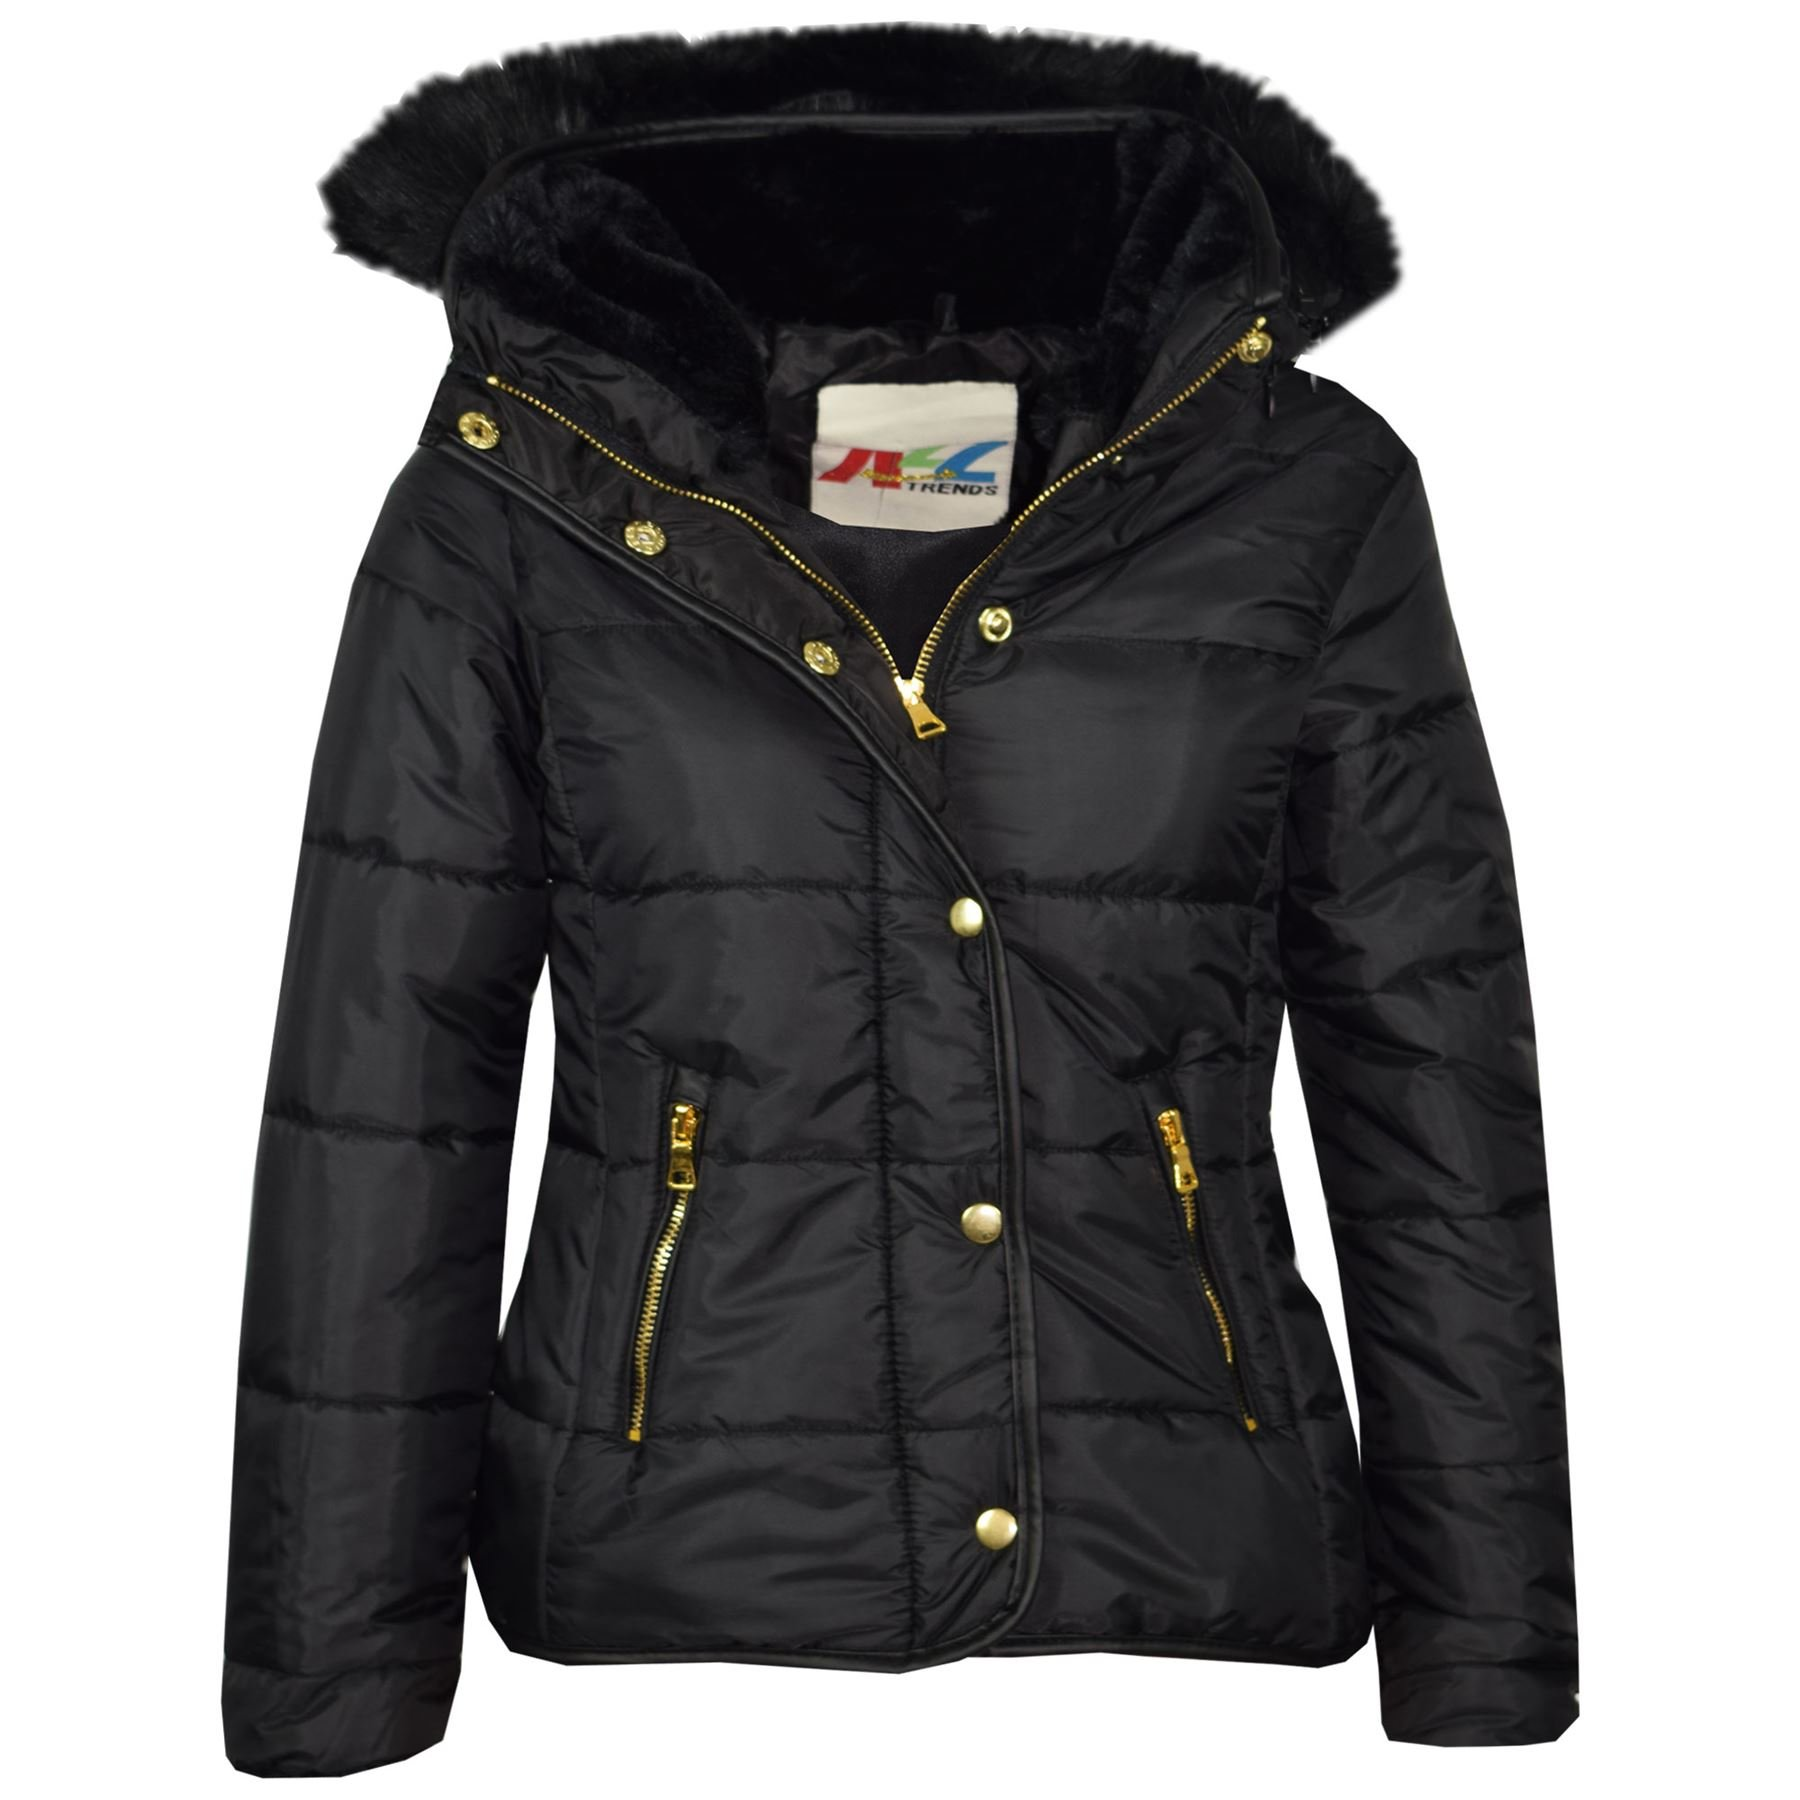 A2Z 4 Kids® Girls Jacket Kids Black Padded Puffer Bubble Fur Collar Quilted Warm Thick Coats